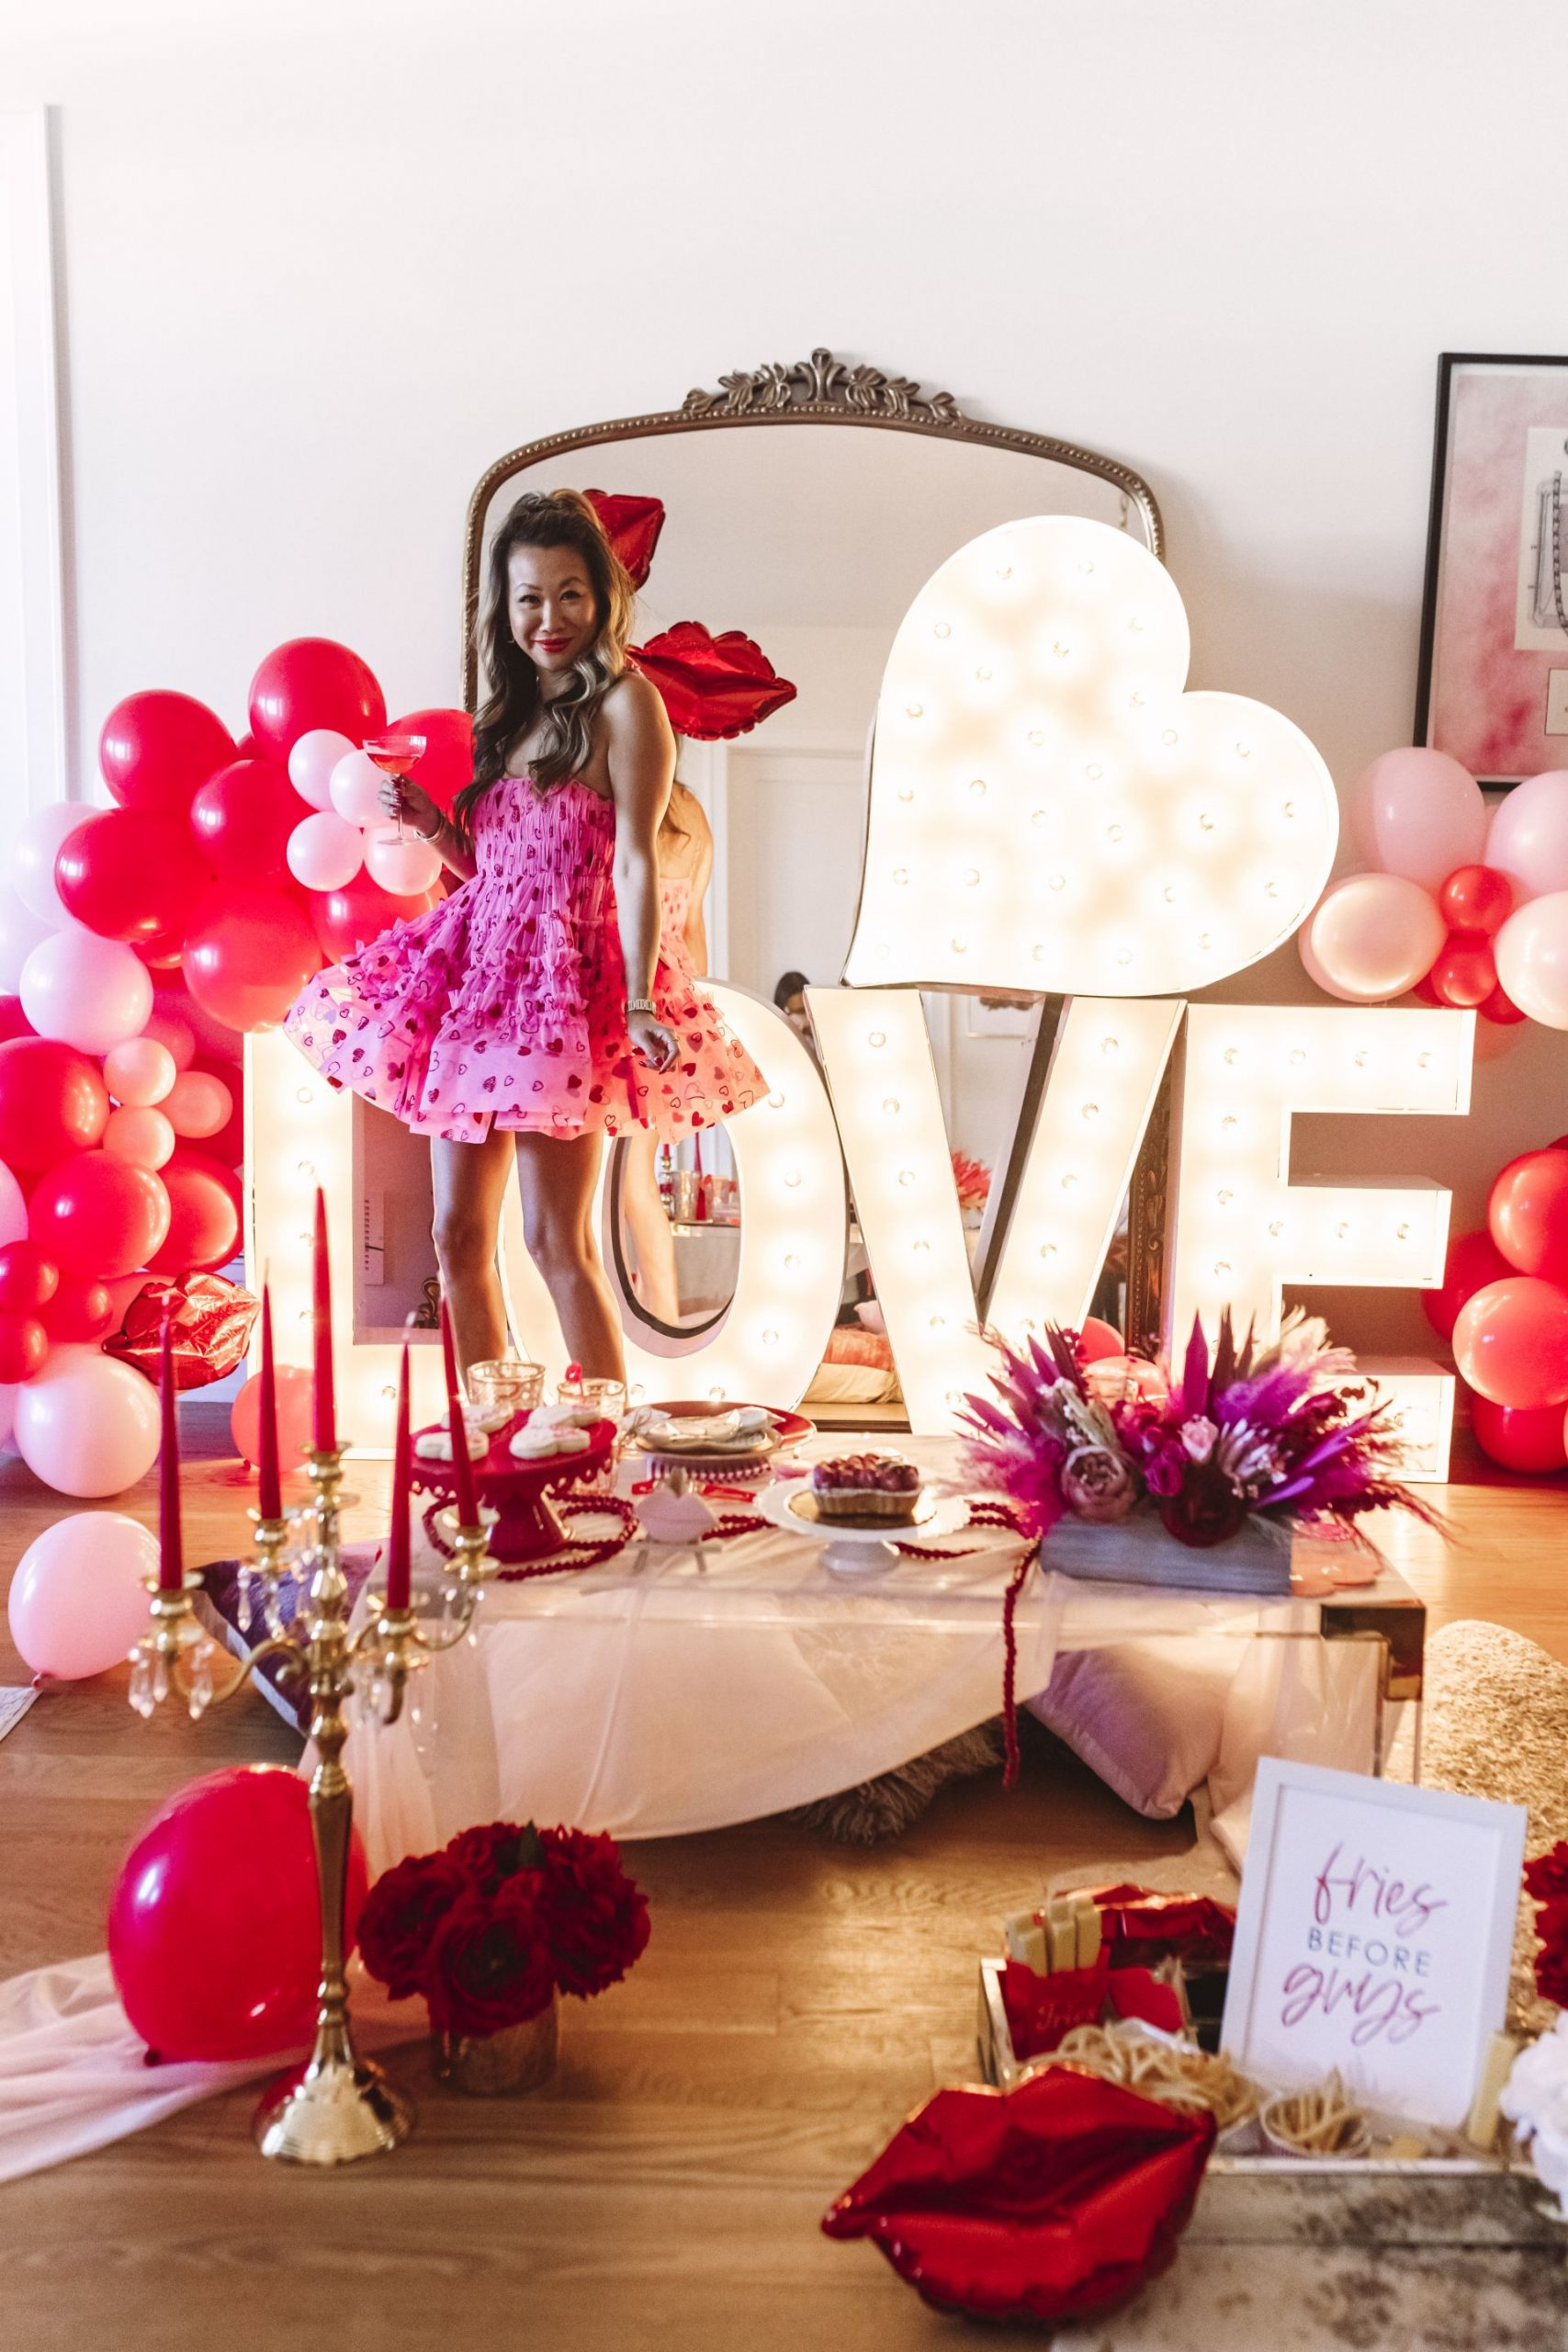 glam Valentine's and Galentine's party, Glam Party Decor Ideas, Galentine's party decor, Valentine's day party decor, girls night party decor ideas, Vday party decorations, pink and red party theme, girly partytheme decor, love party theme decor,valentines day party ideas,valentines day party ideas for adults, light up marquee letters for parties, Red Soles and Red Wine, Jennifer Worman